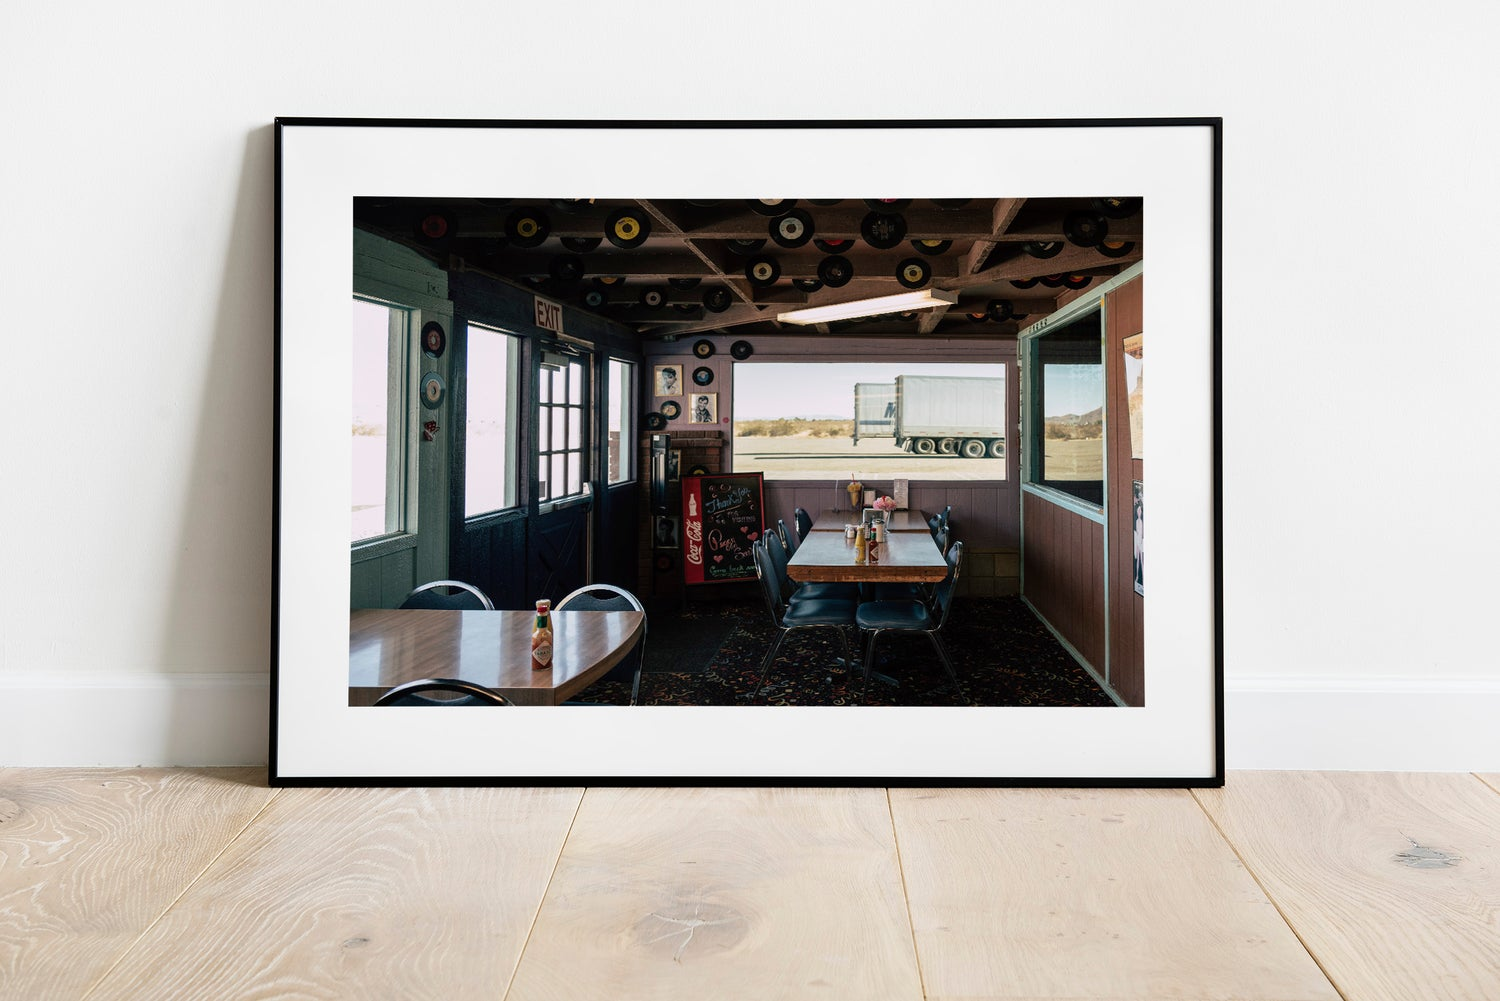 Image of The Diner